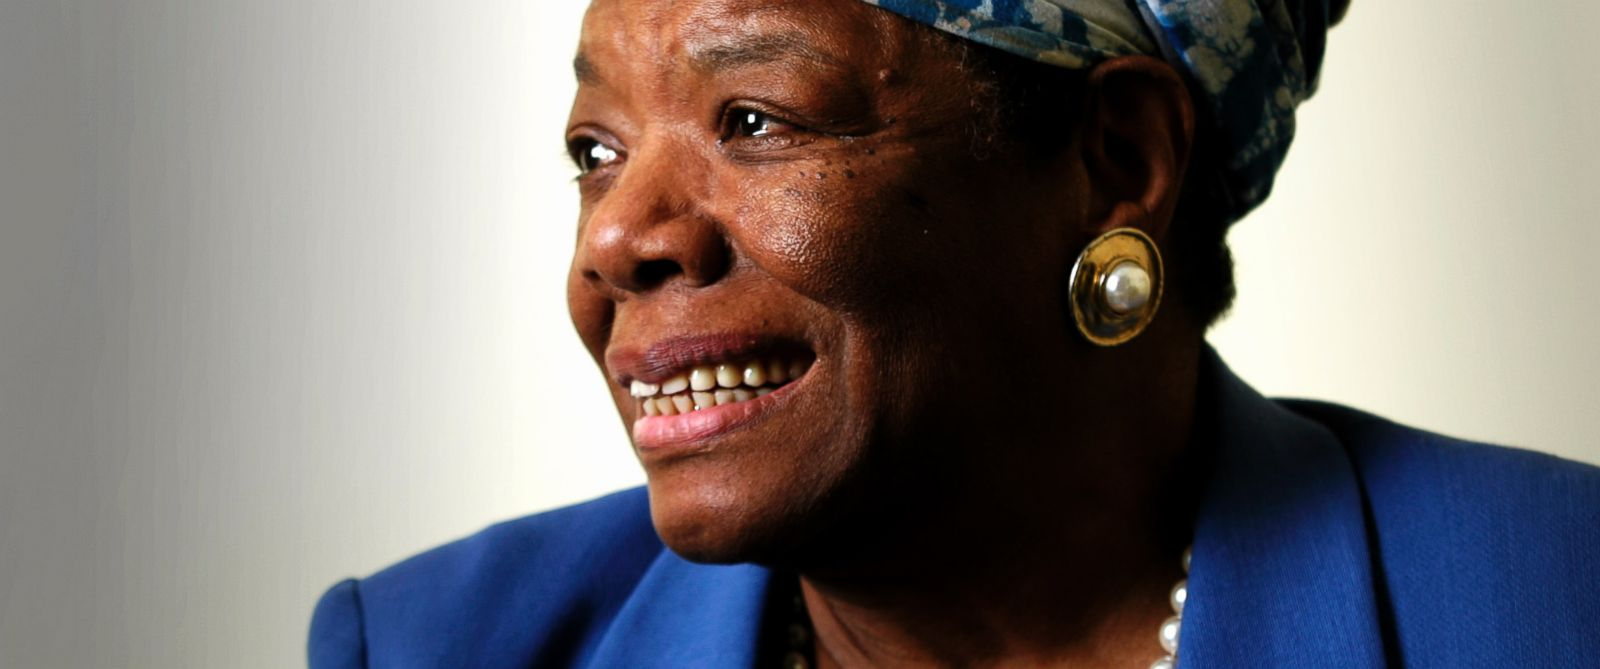 PHOTO: Dr. Maya Angelou poses for a photo in London on Sept. 20, 2005.